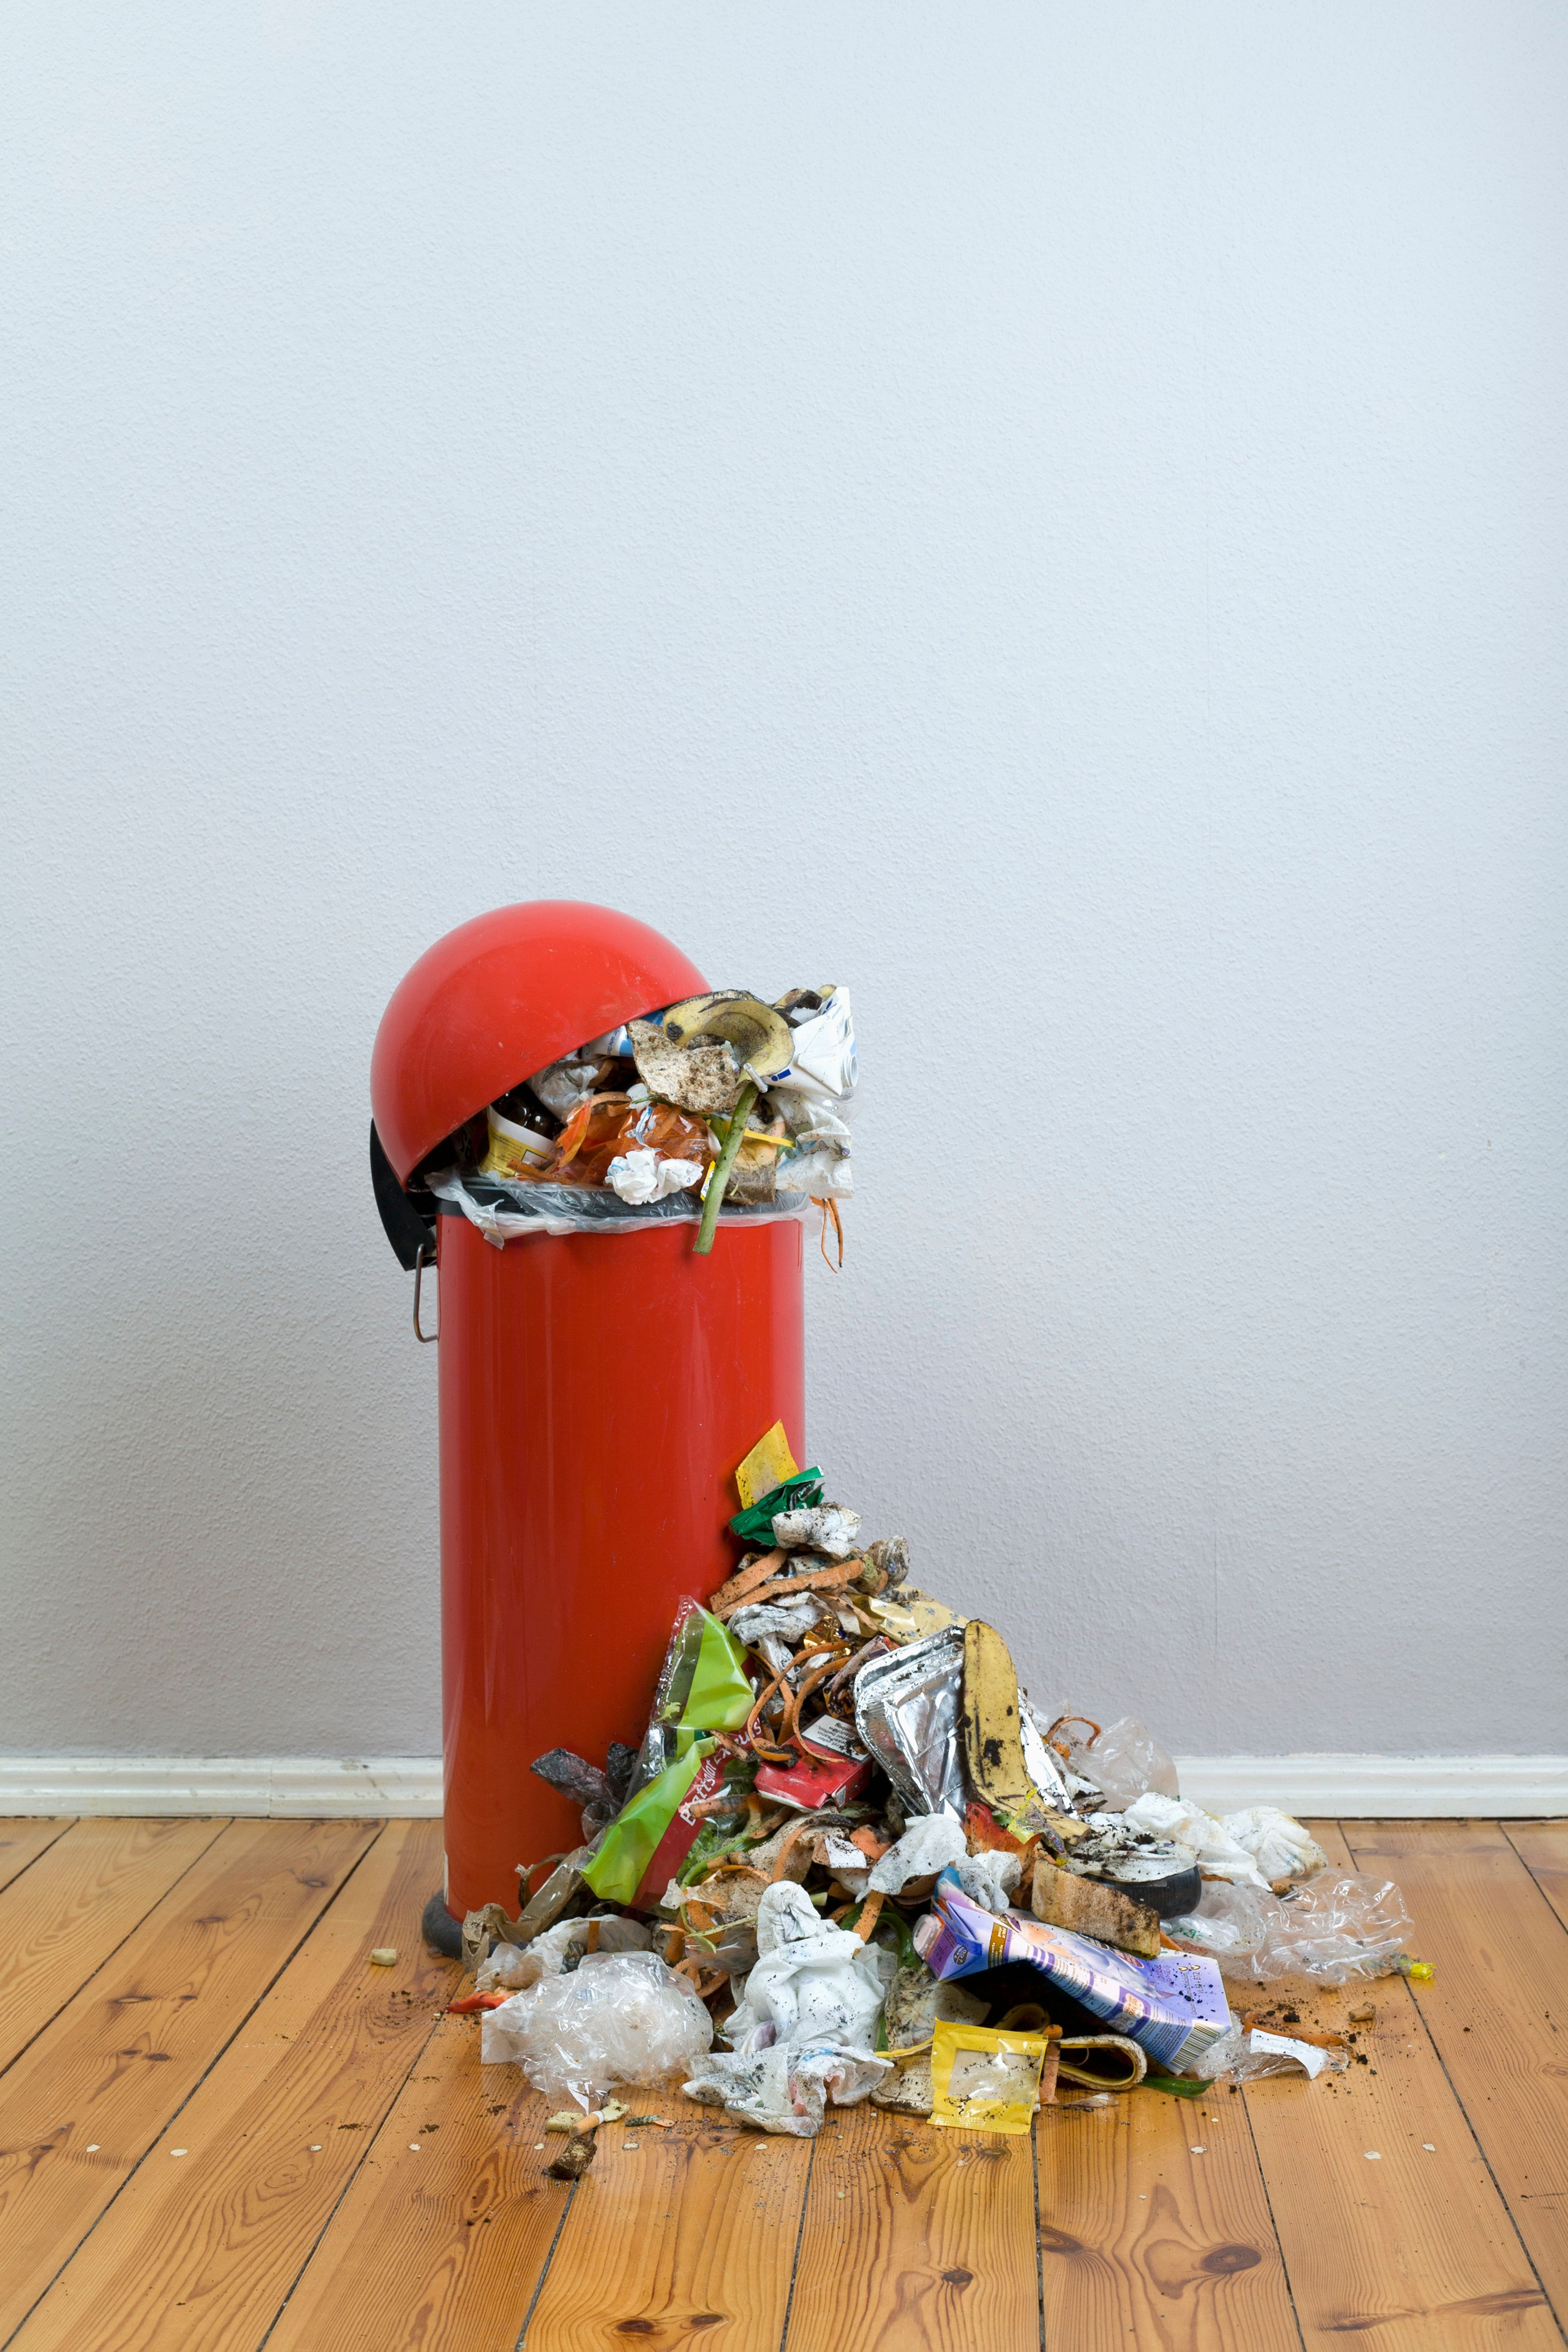 Overflowing Bins? 4 Ways To Cut Down On Your Waste Before Rubbish